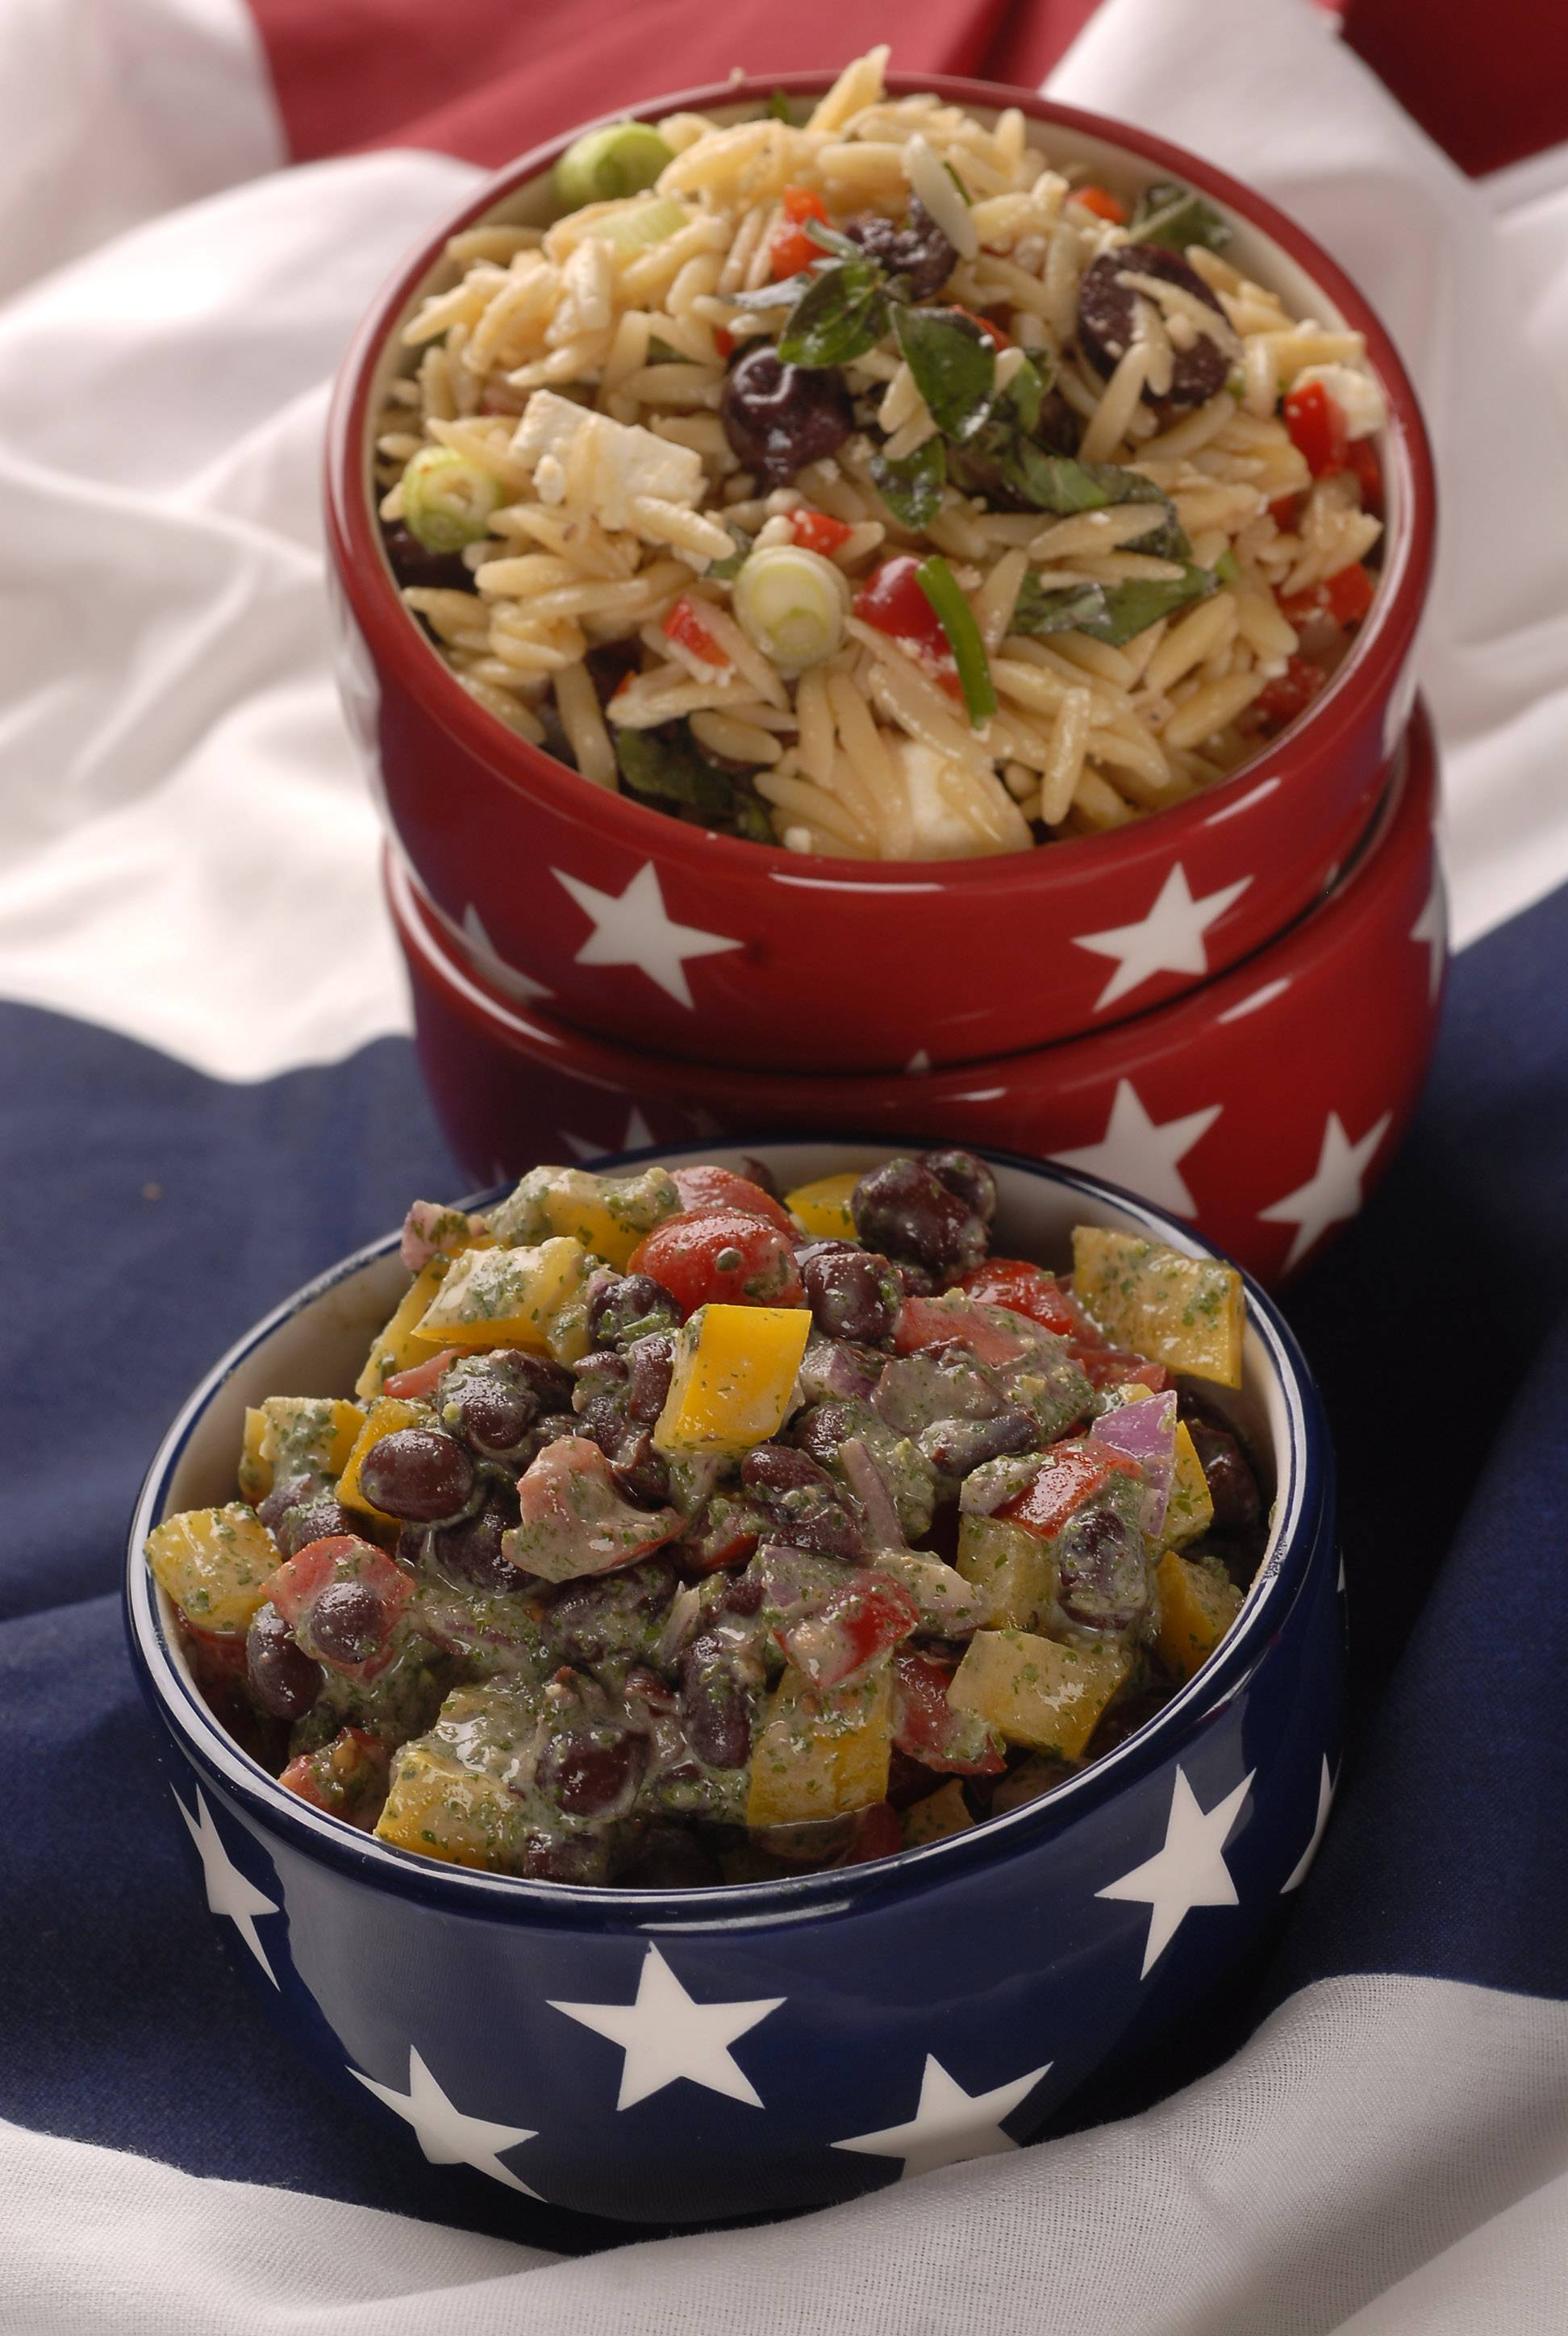 Grecian Orzo Salad is one of Deborah Pankey's favorite summer side dishes, and is sure to become one of yours.